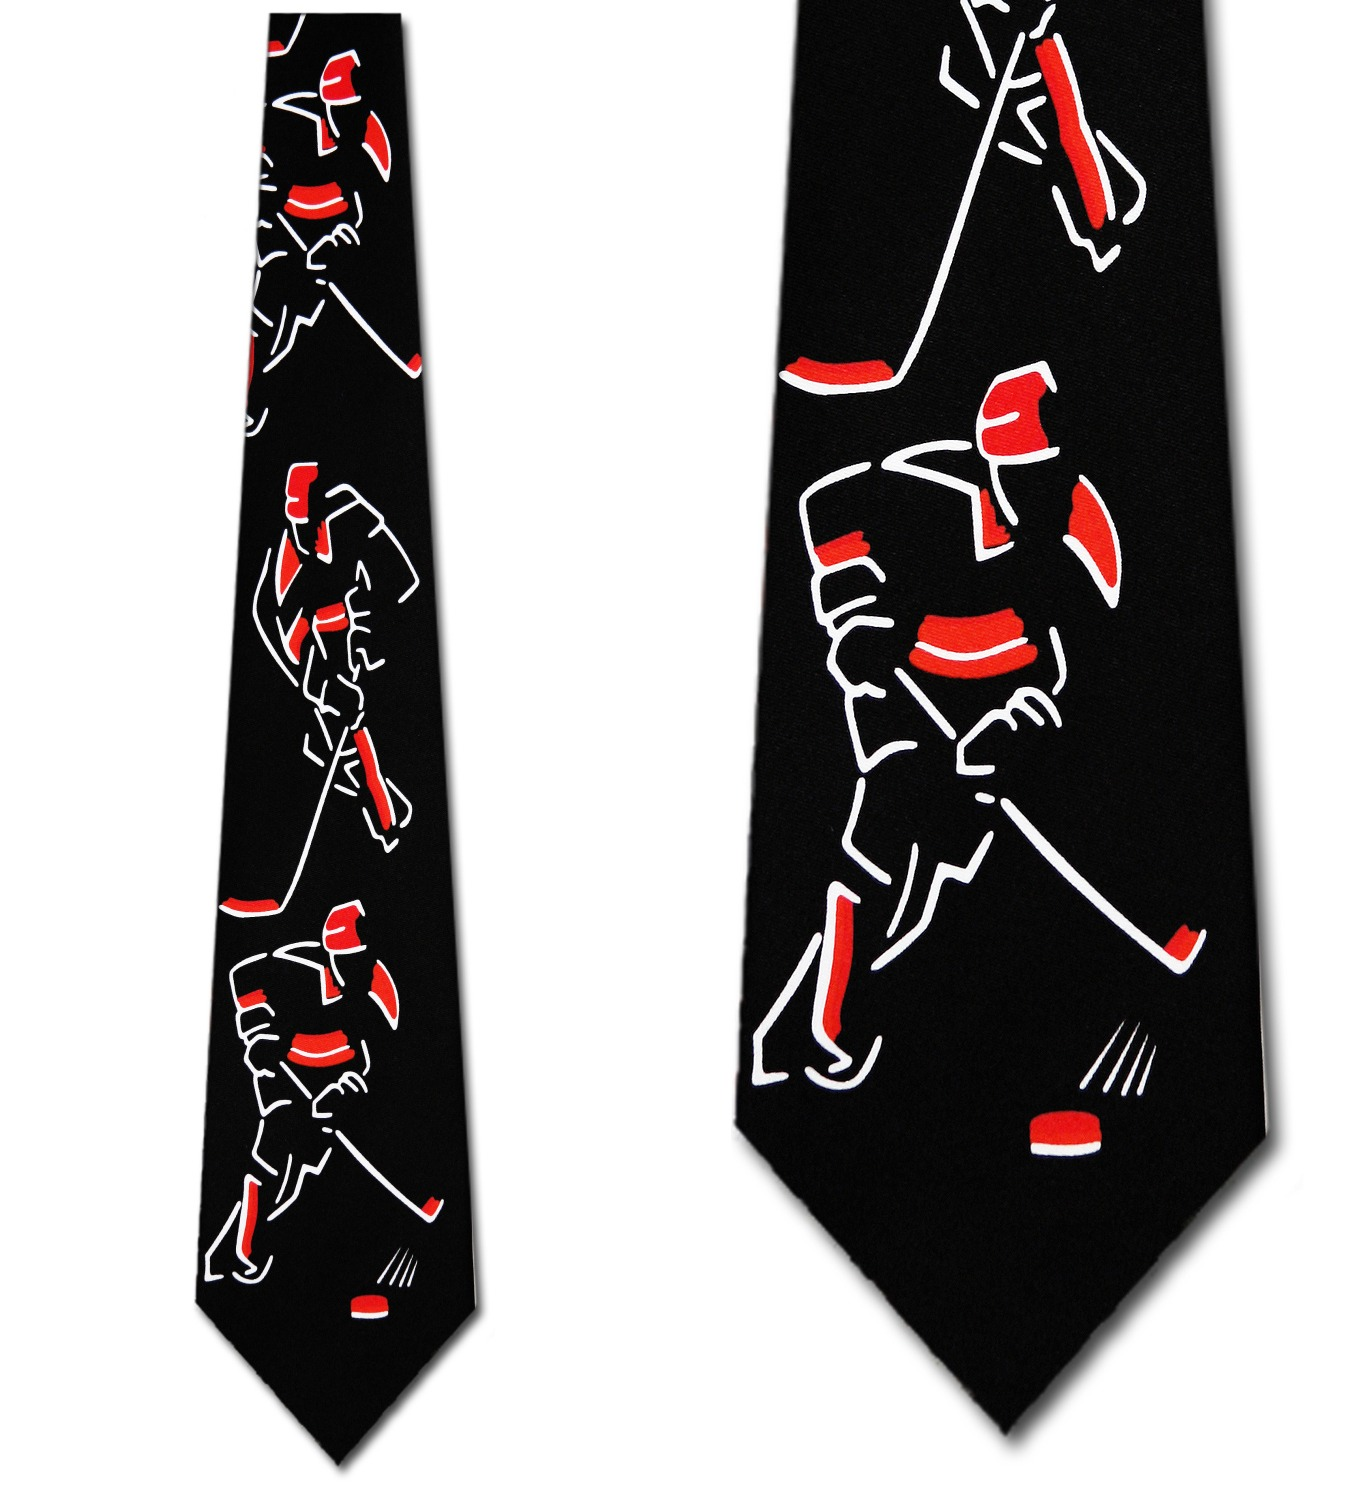 Hockey Images (Black and Red) Necktie Mens Tie by